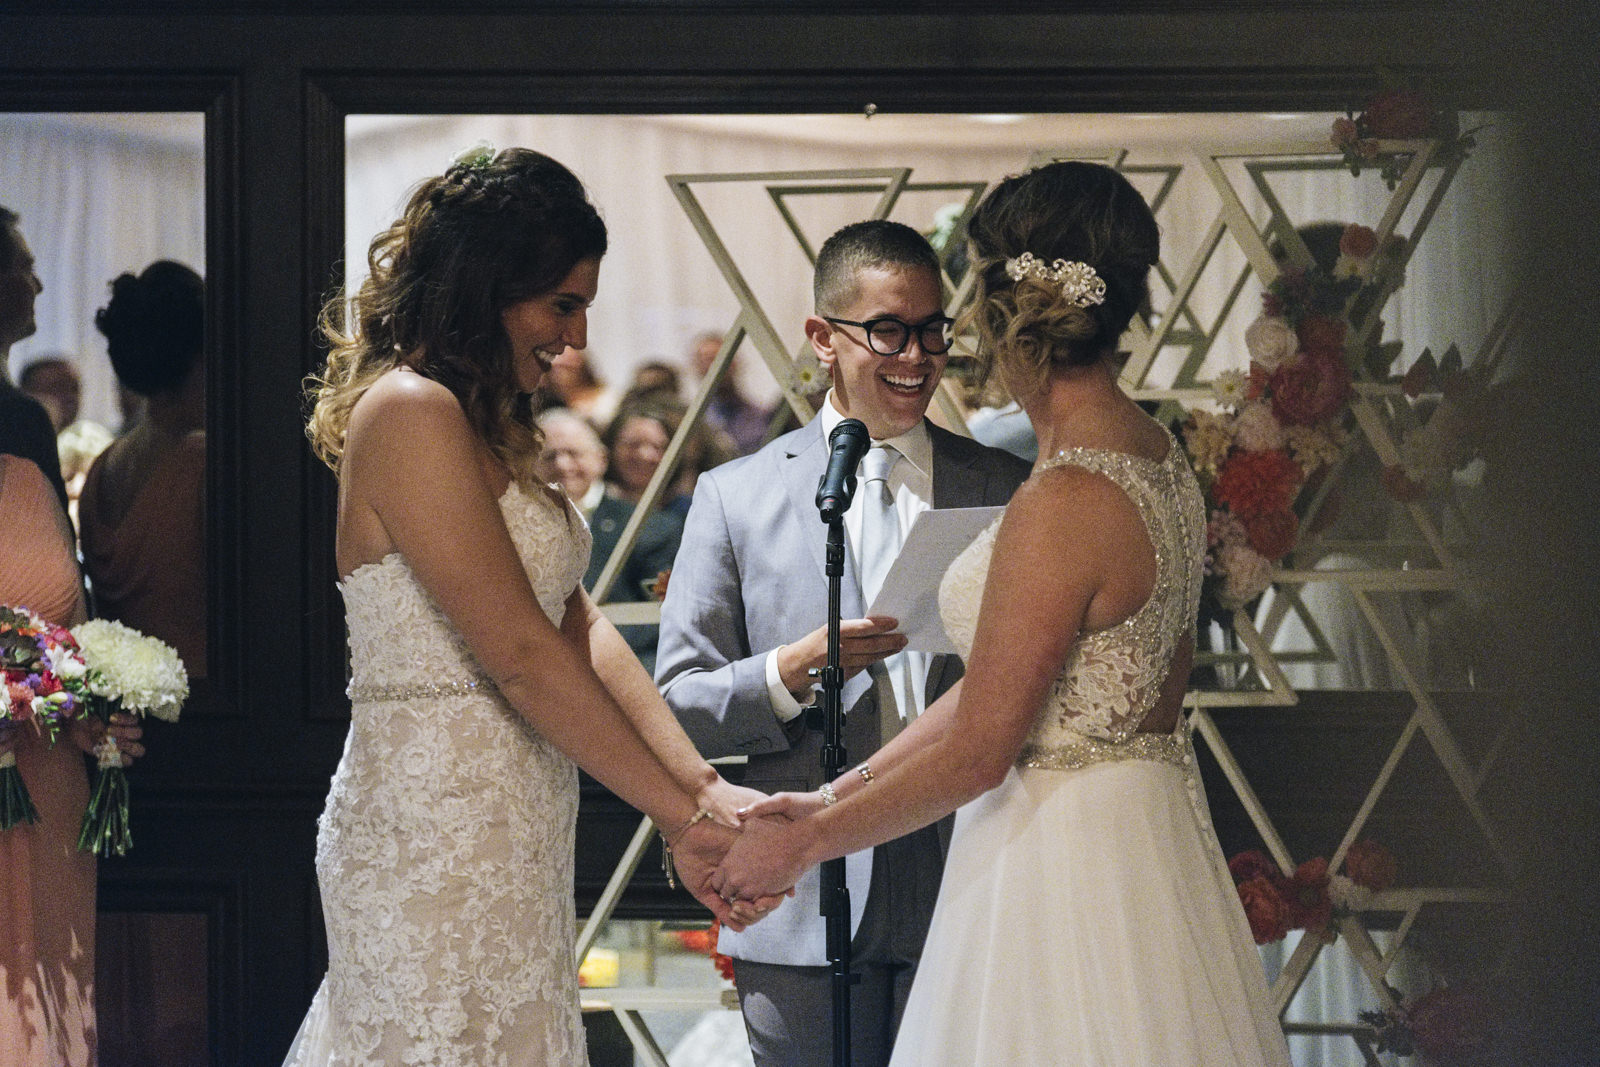 Brides smile and hold hands at the alter for their wedding ceremony in Maumee, Ohio.